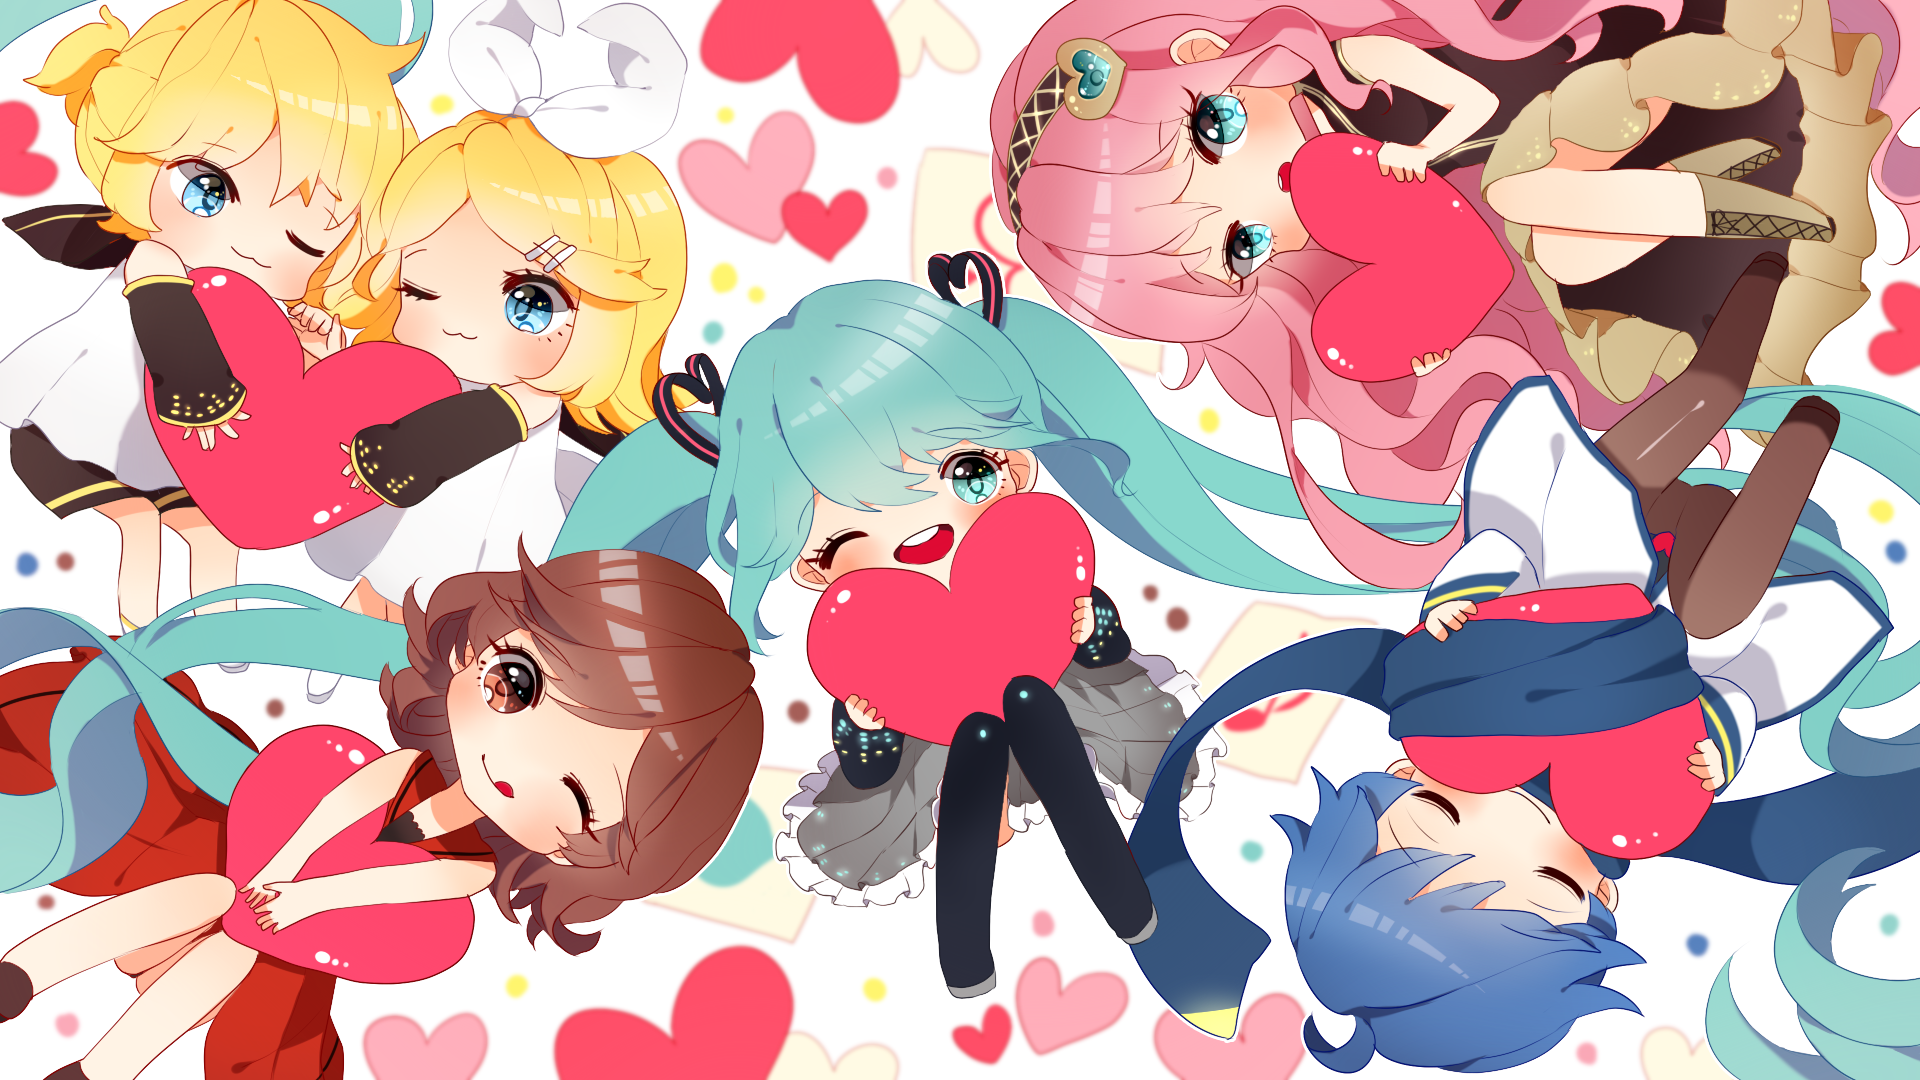 Chibi Group Vocaloid Full HD Wallpaper And Background Image